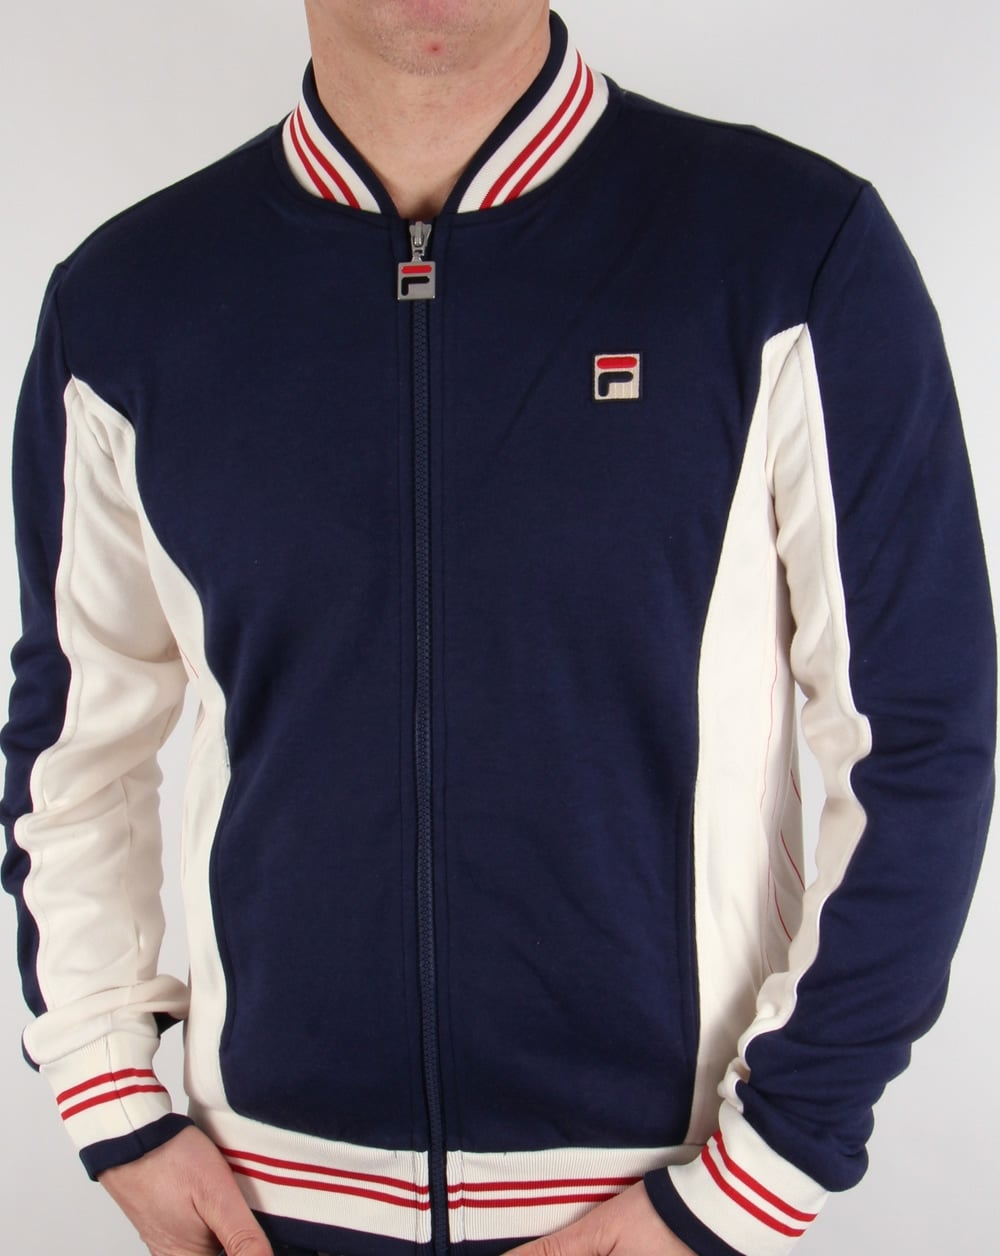 a7d2715dbd27 We're Back 'In Business' With These Fila Classics - 80's Casual ...